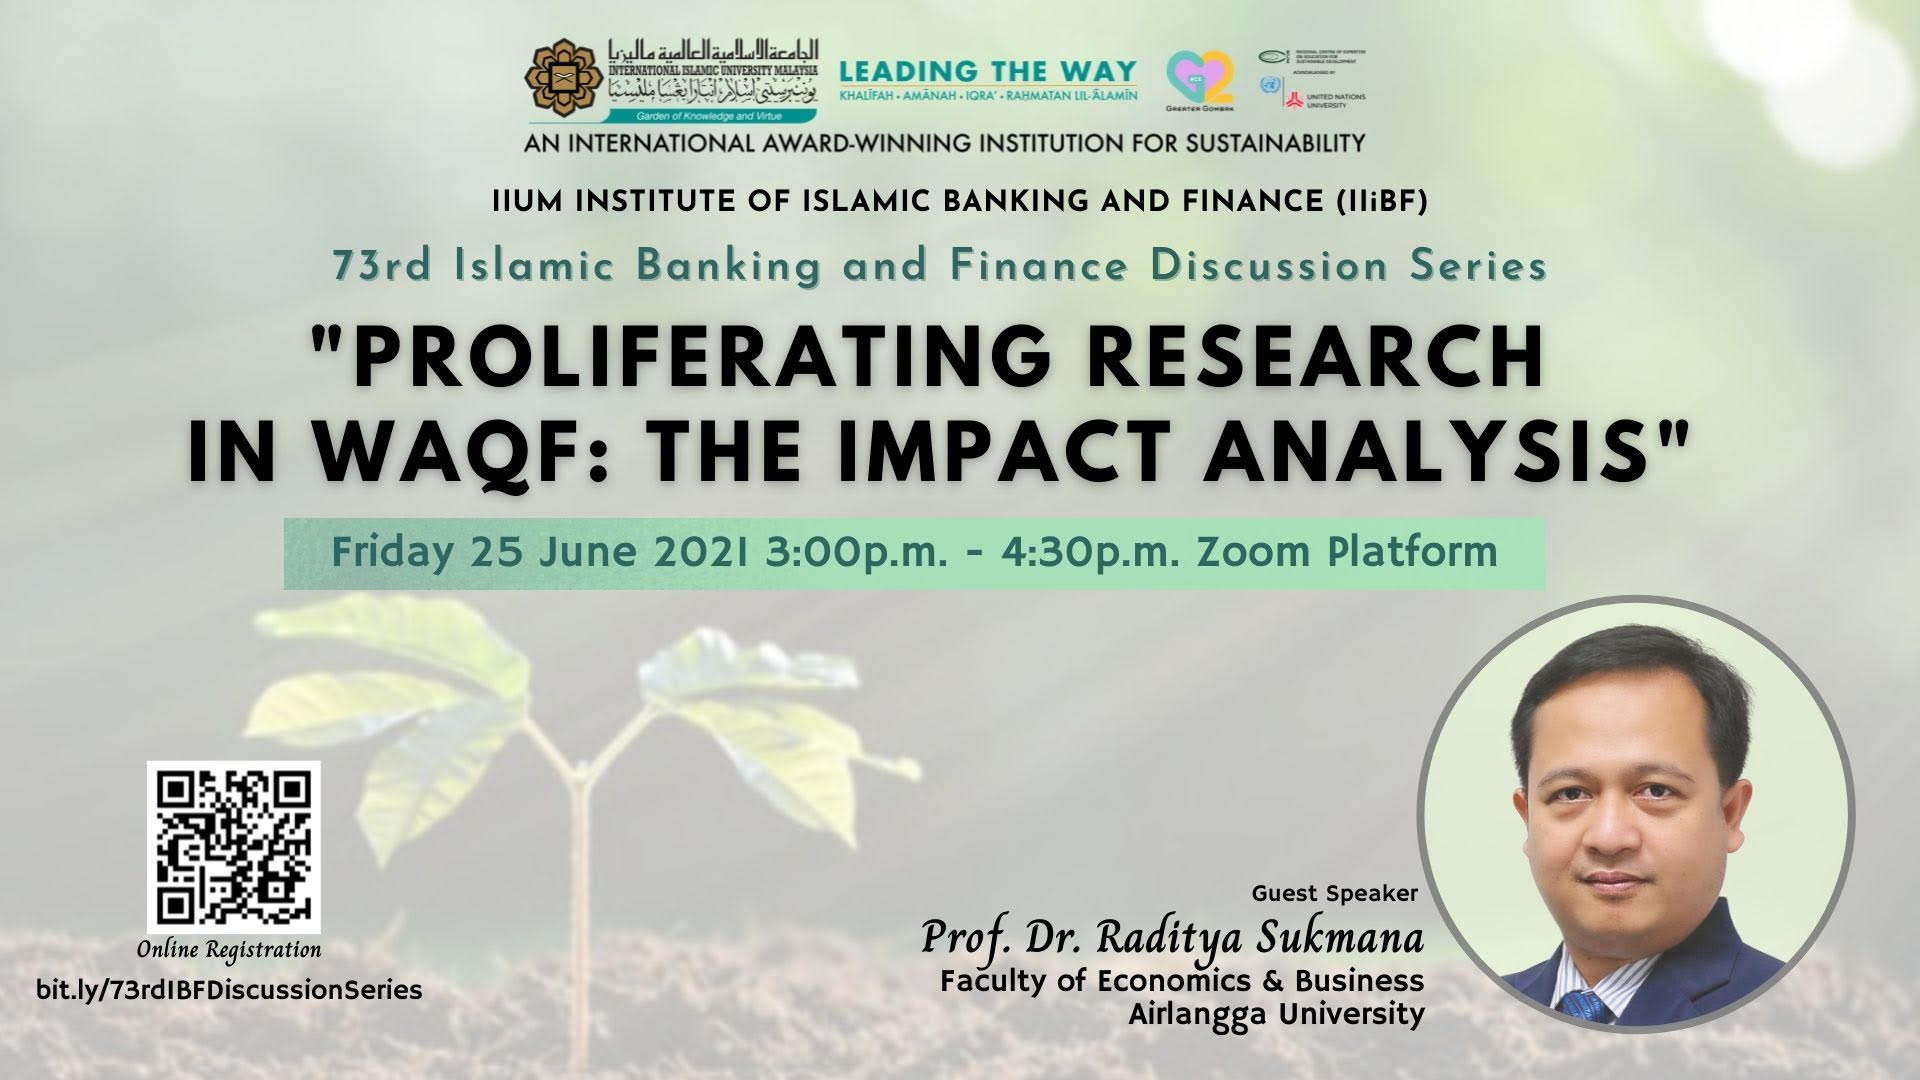 73rd ISLAMIC BANKING AND FINANCE DISCUSSION SERIES